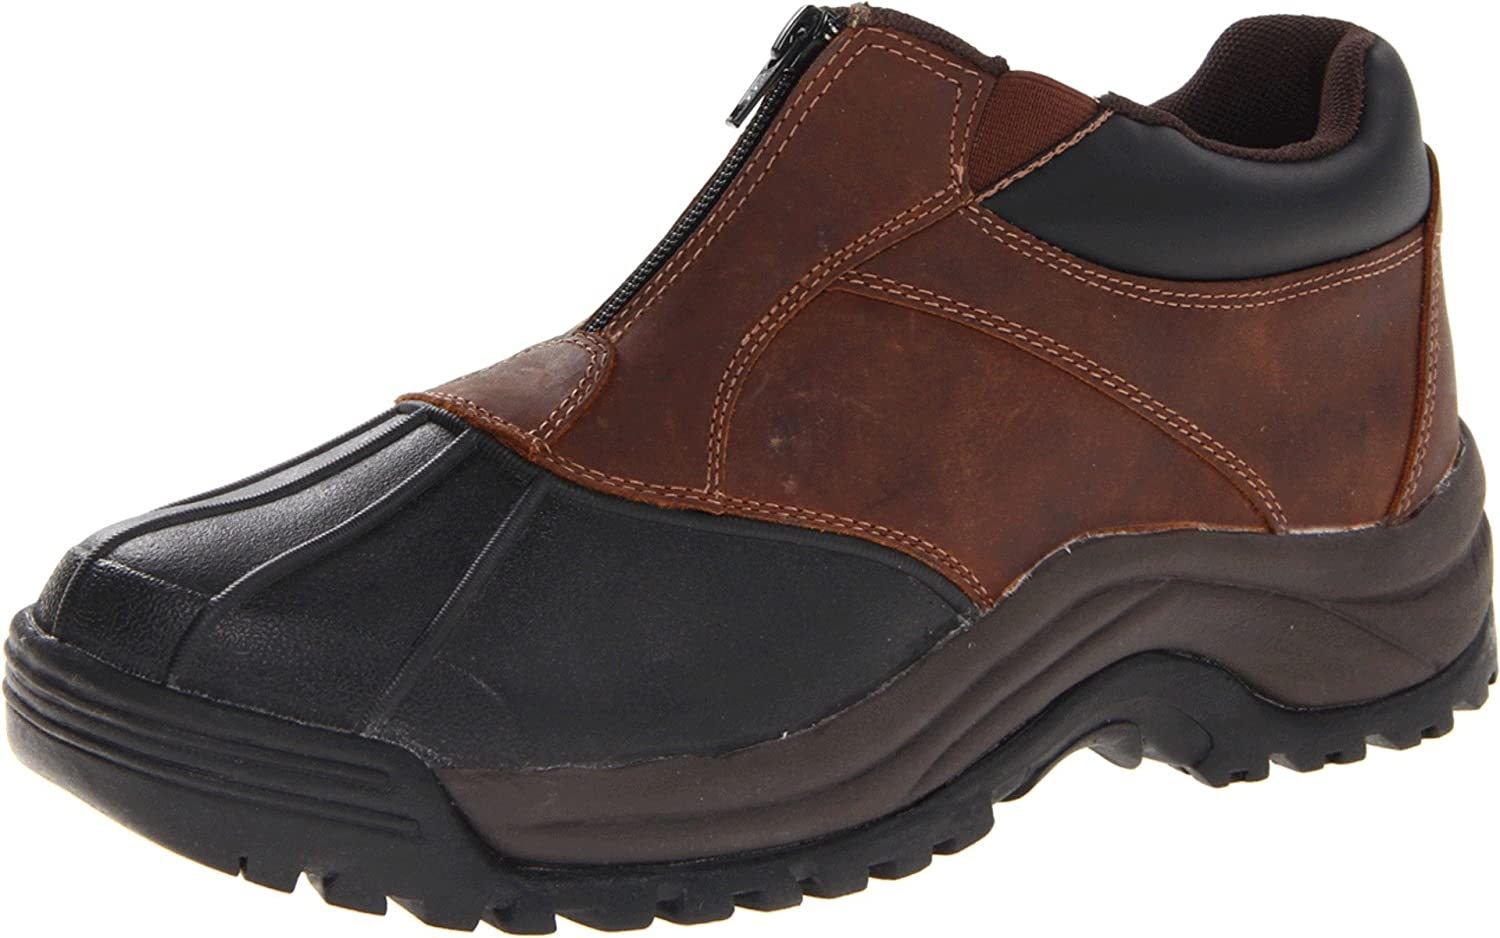 Prop?t mens Blizzard Ankle Special price for a limited time Zip Louisville-Jefferson County Mall Snow 1 chukka boots Black Brown